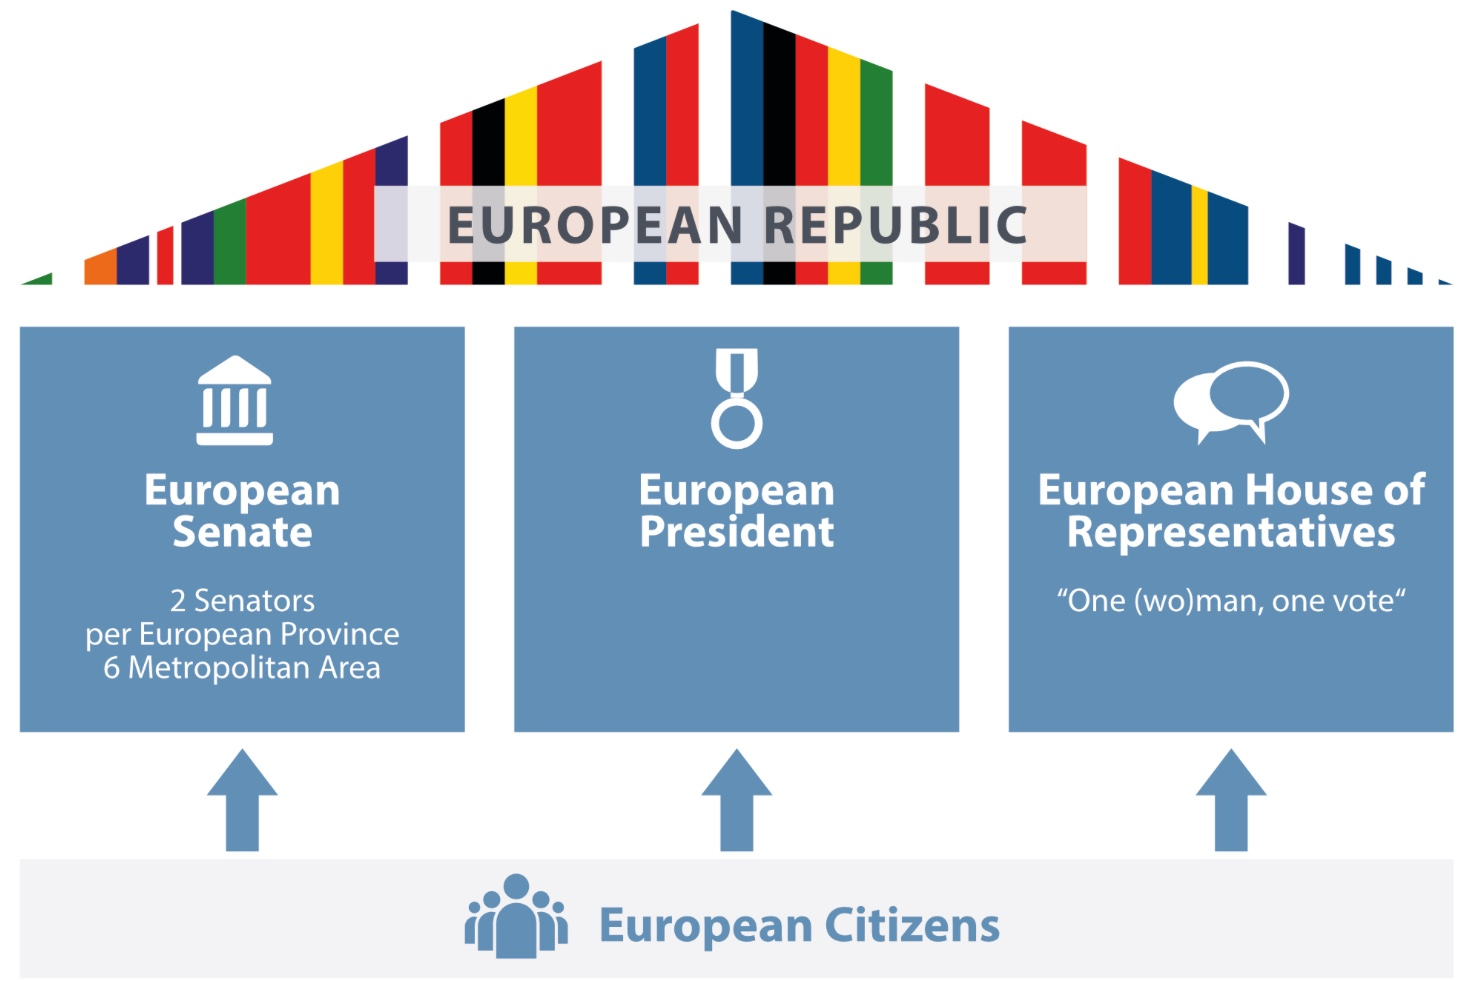 a graphic describing the proposed structure for the European Republic